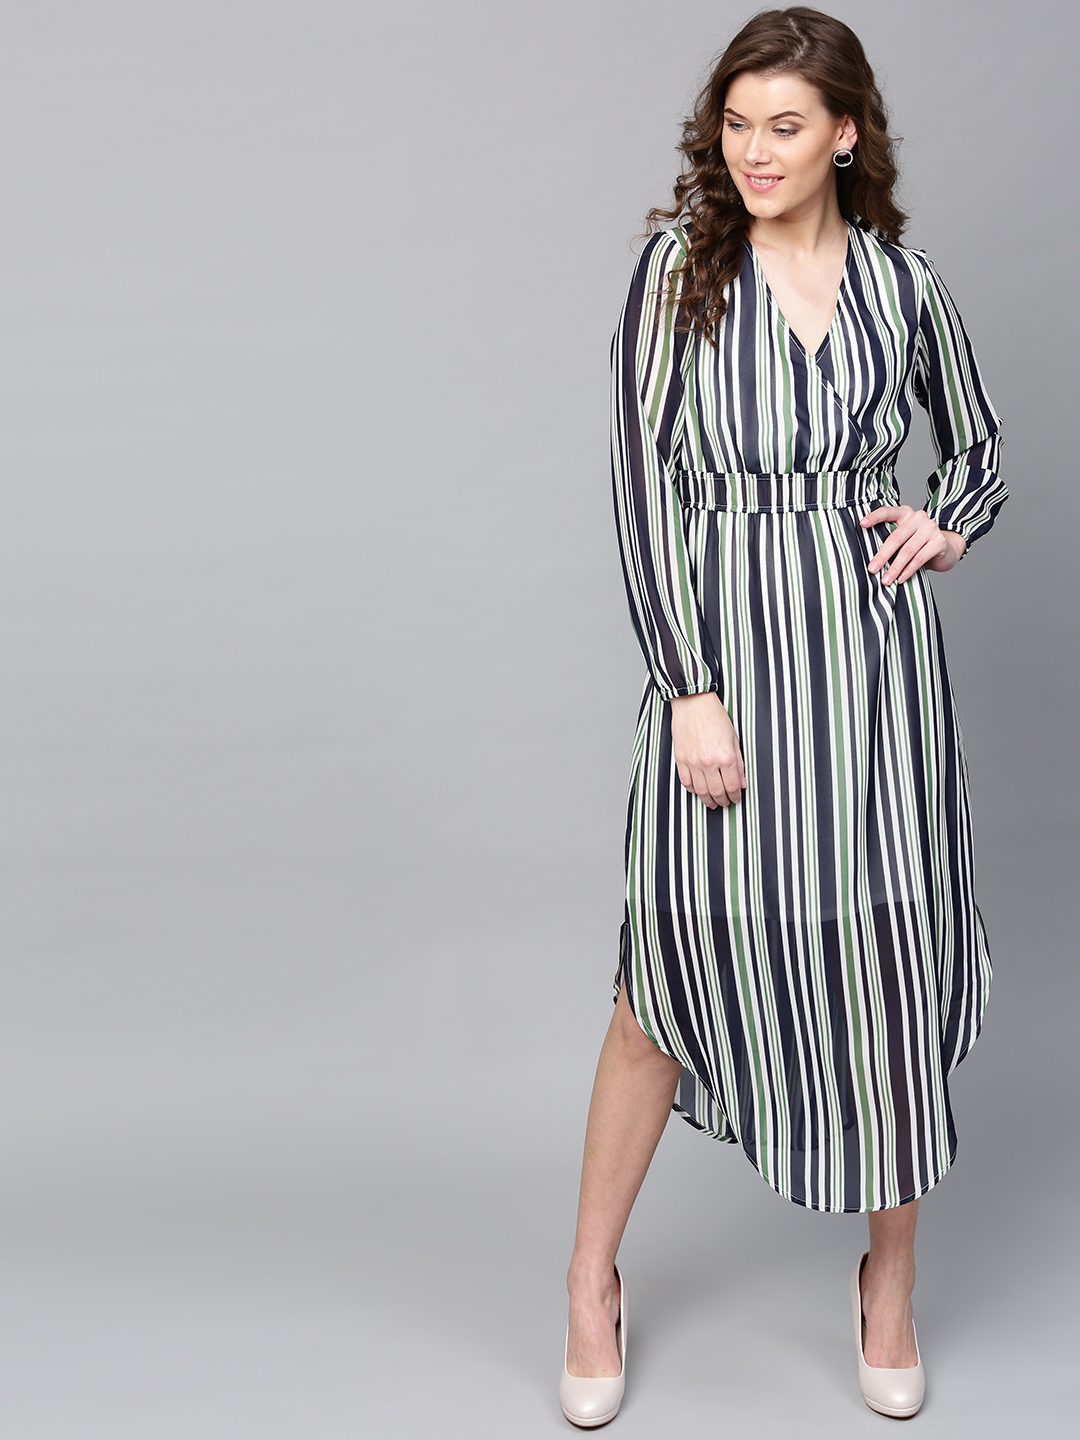 SASSAFRAS Women Navy Blue & Green Striped Midi Fit & Flare Dress Price in India